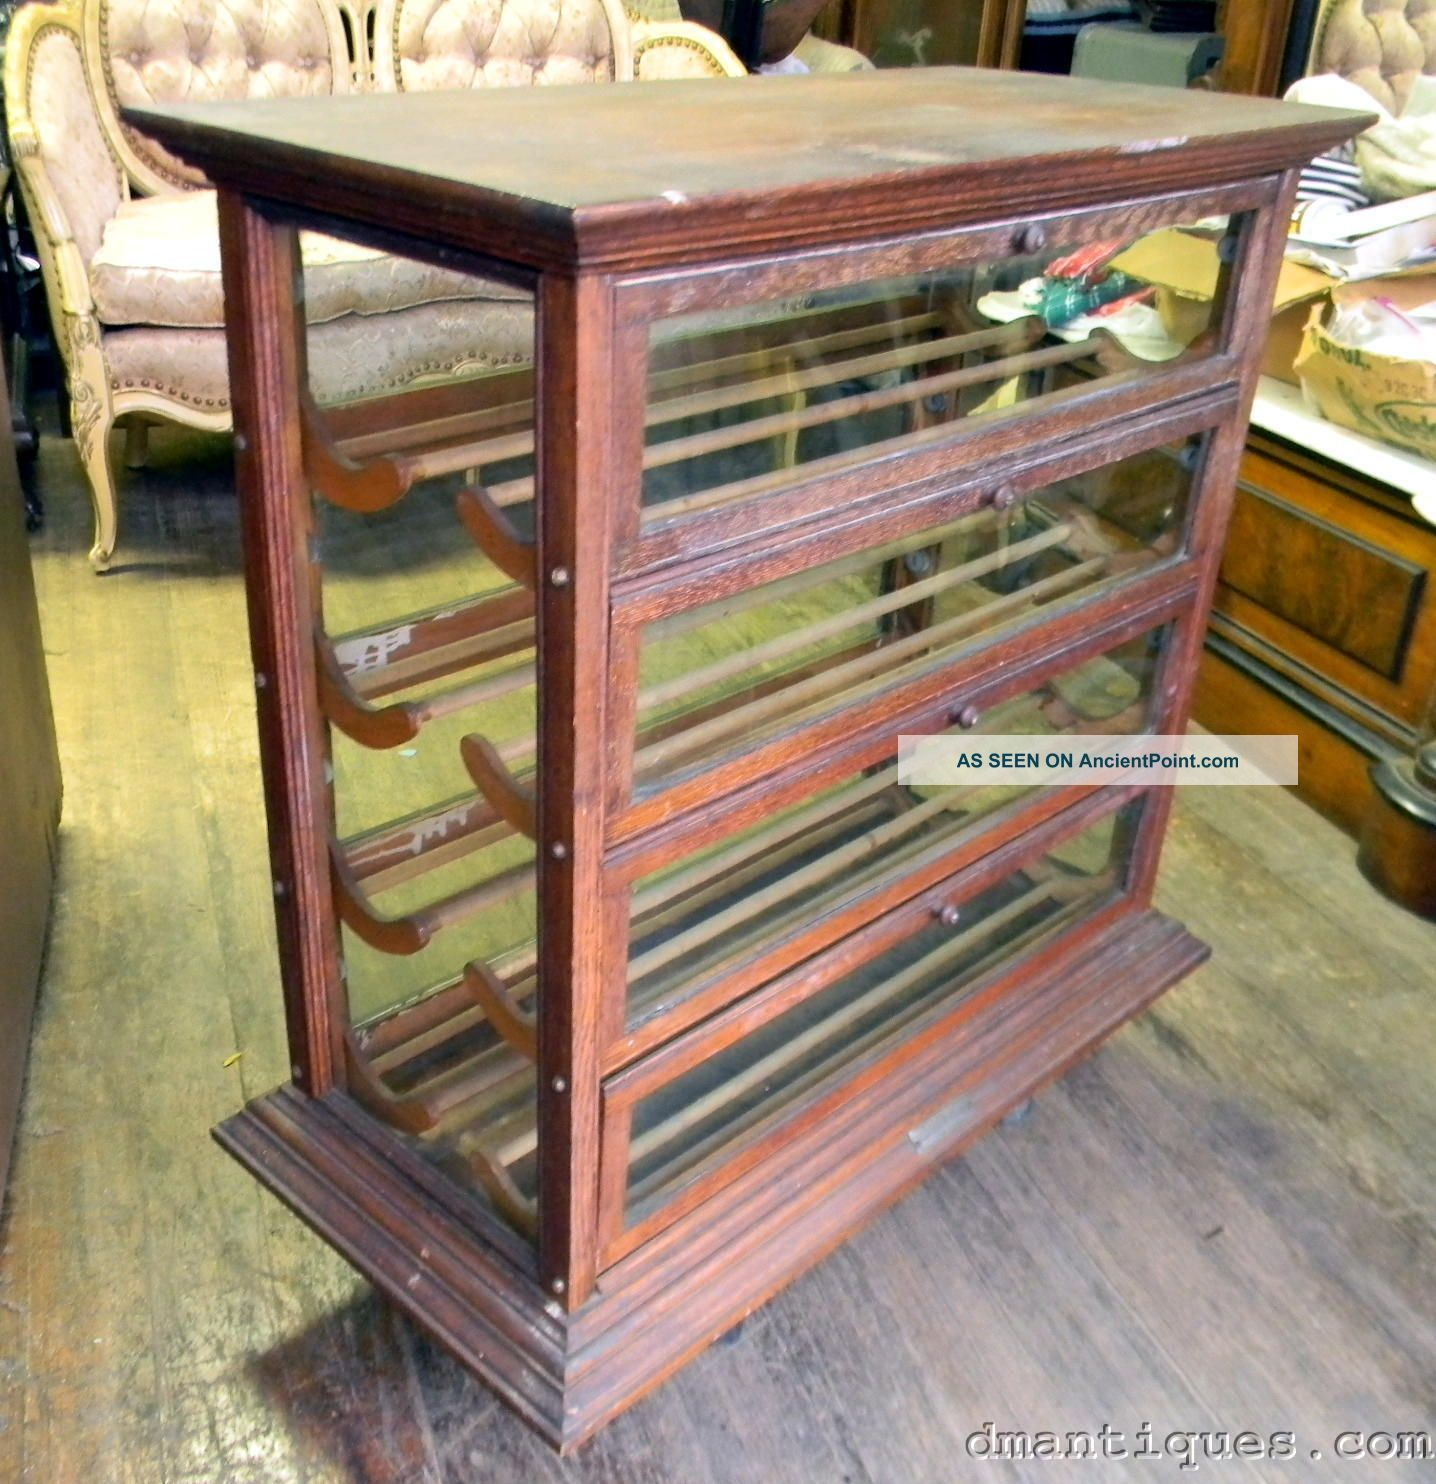 Antique Country Store Solid Oak Ribbon Display Cabinet Russell Ilion Ny - Antique Country Store Solid Oak Ribbon Display Cabinet Russell Ilion